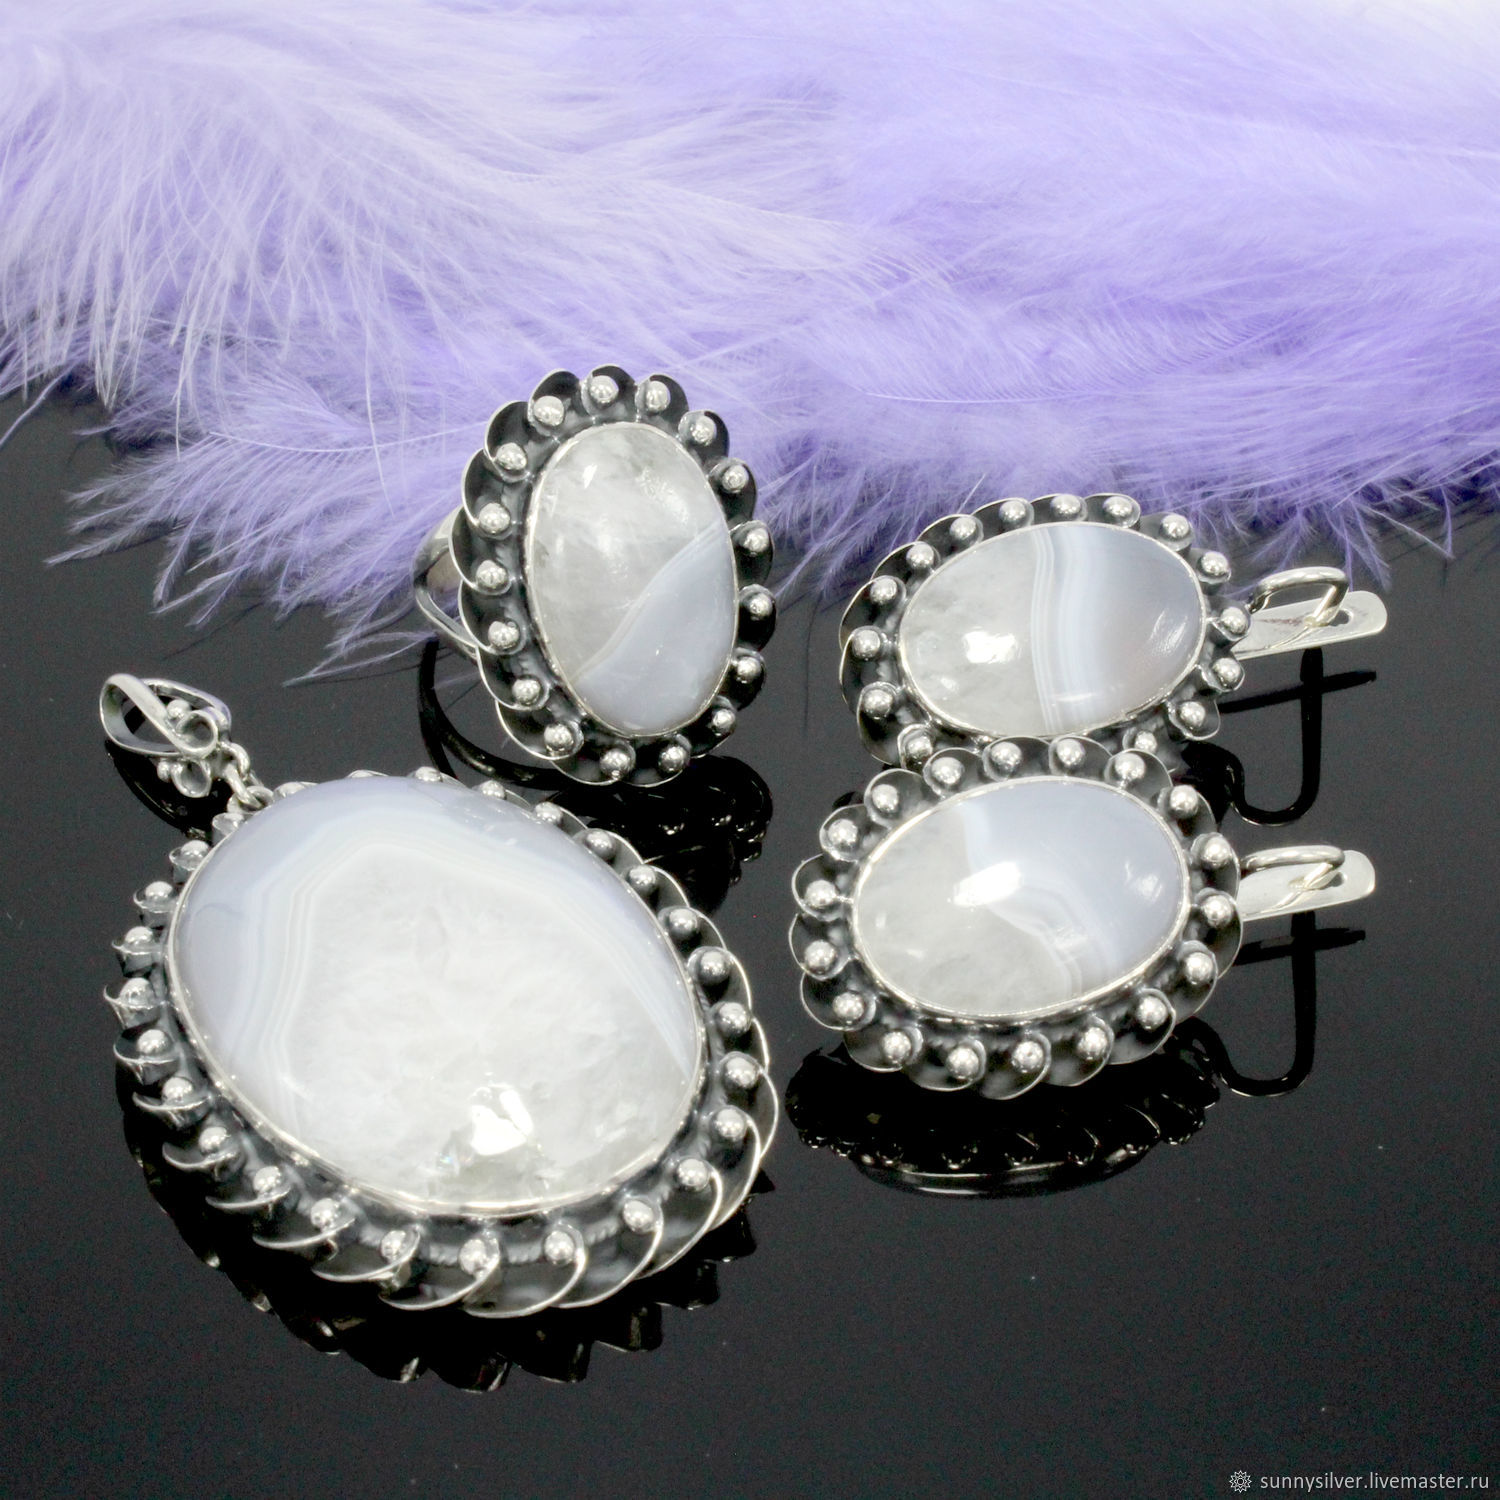 Cascarolla jewelry set with agates in 925 silver (VIDEO), Jewelry Sets, Yerevan,  Фото №1